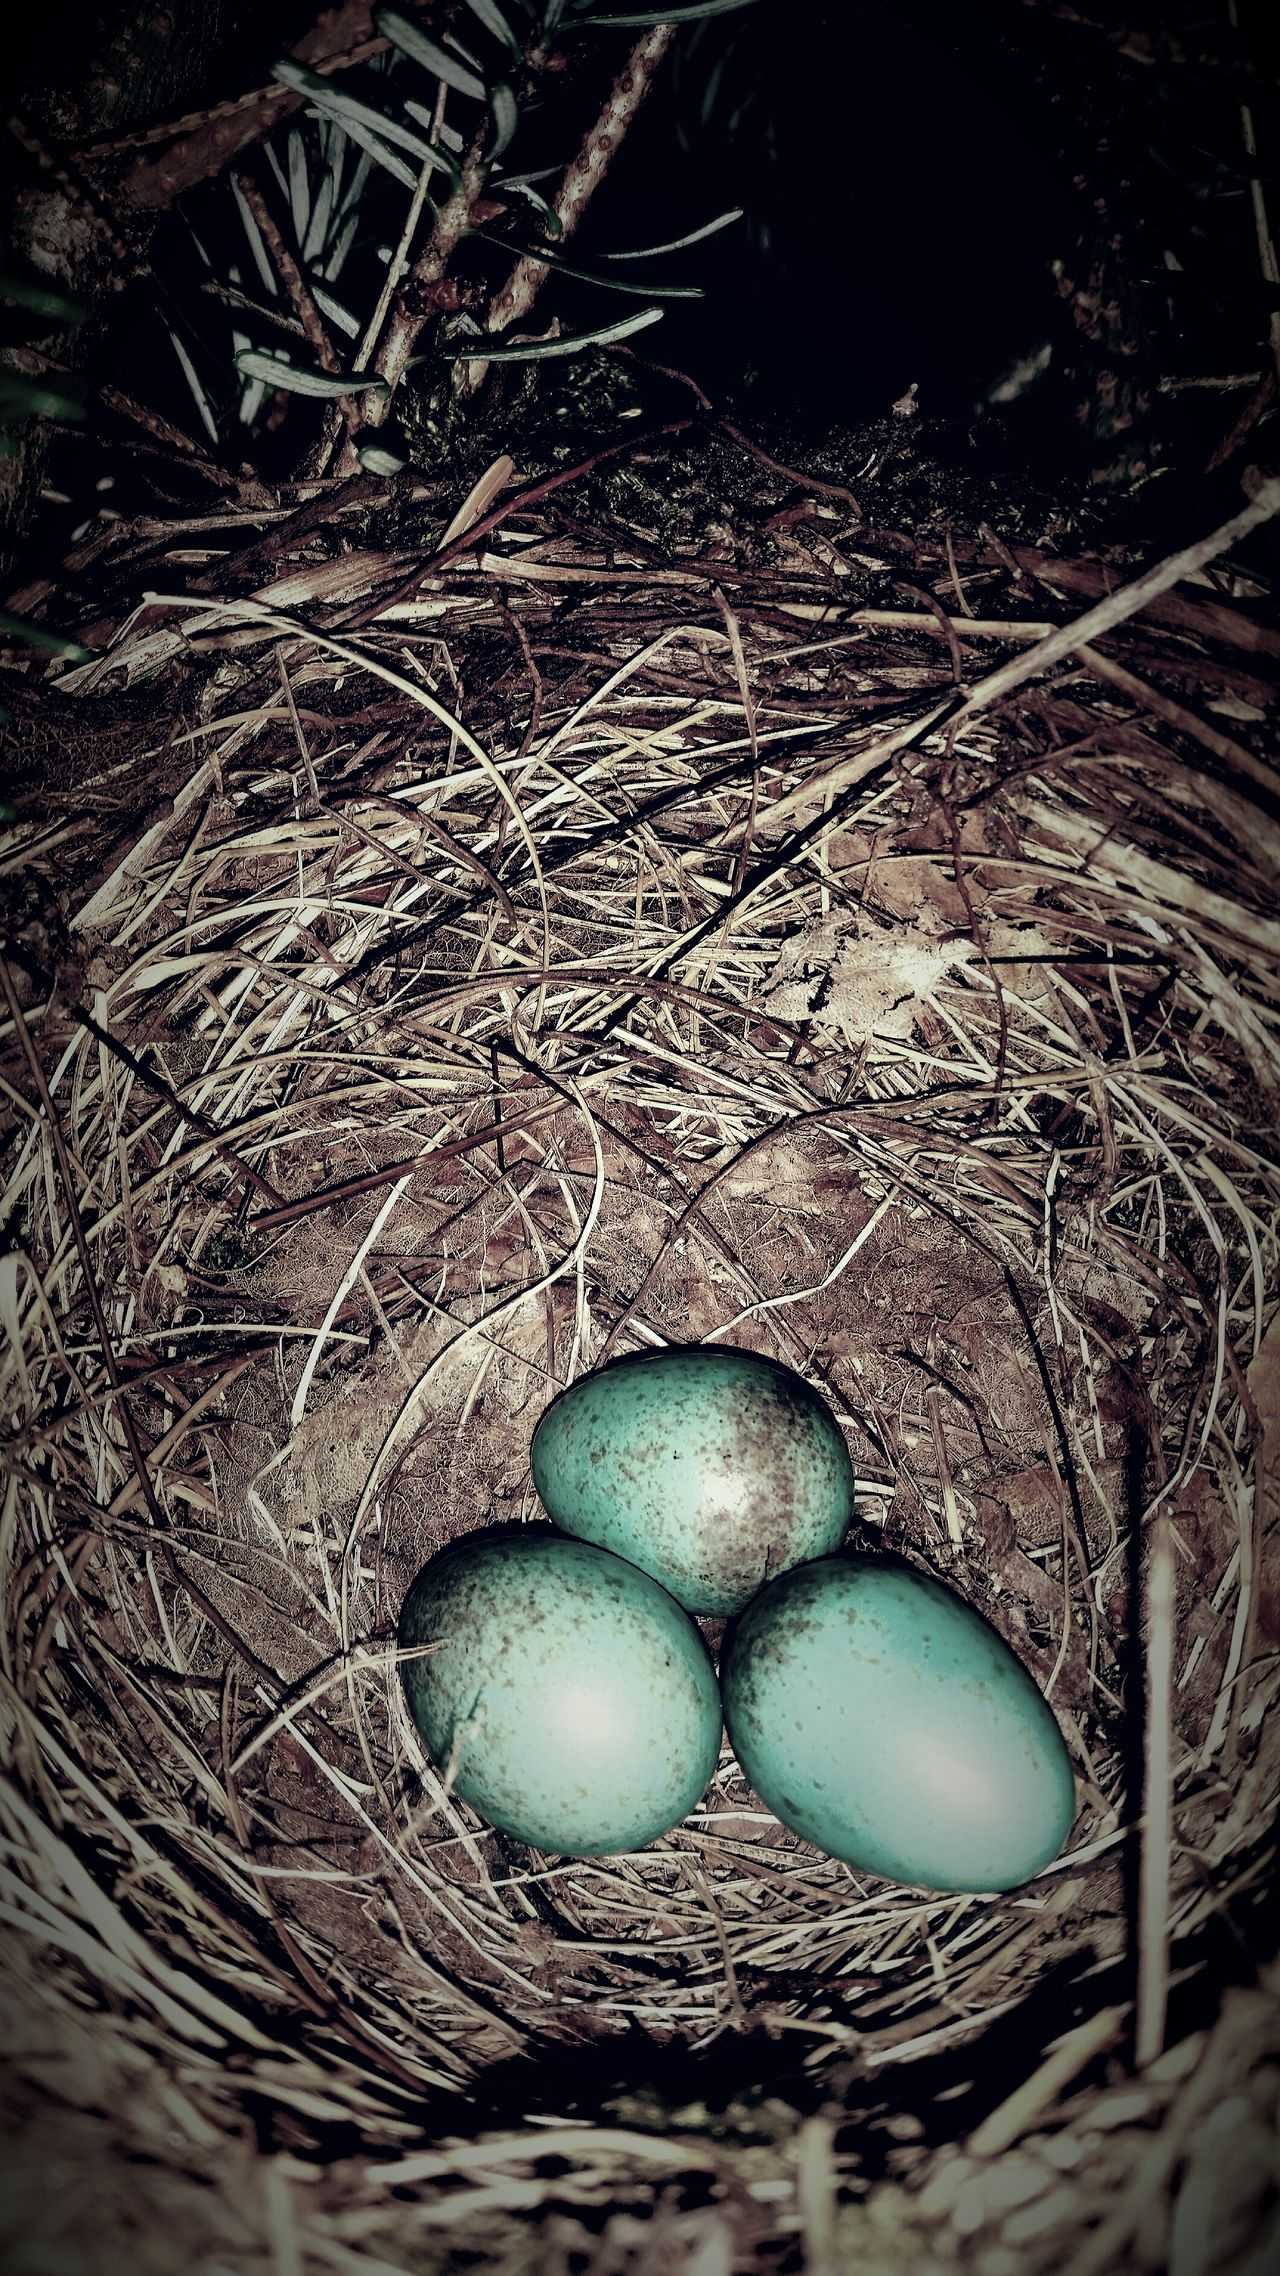 No People Night Close-up Outdoors Eier Eggs Amsel